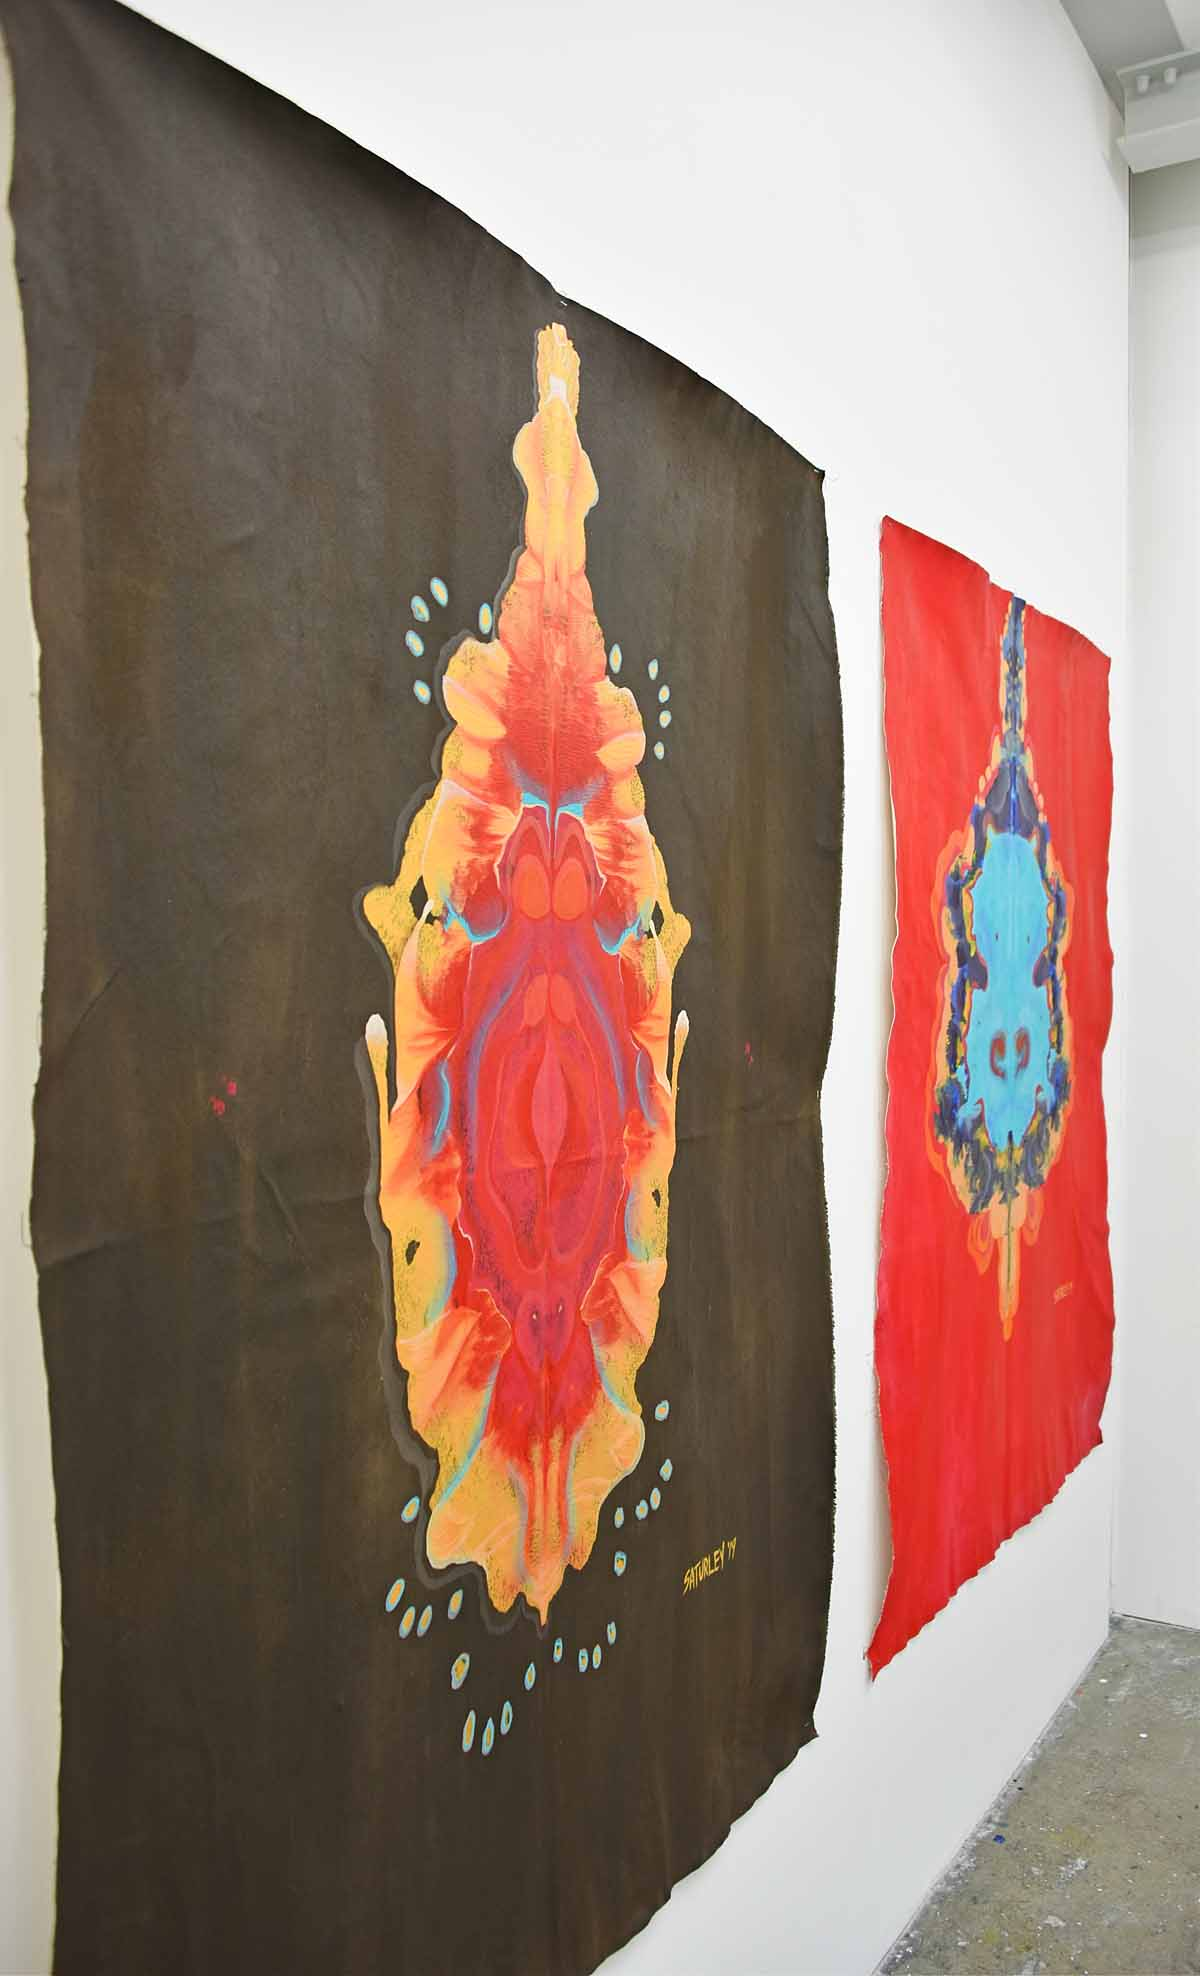 Royal College of Art - abstract paintings Brandy Saturley